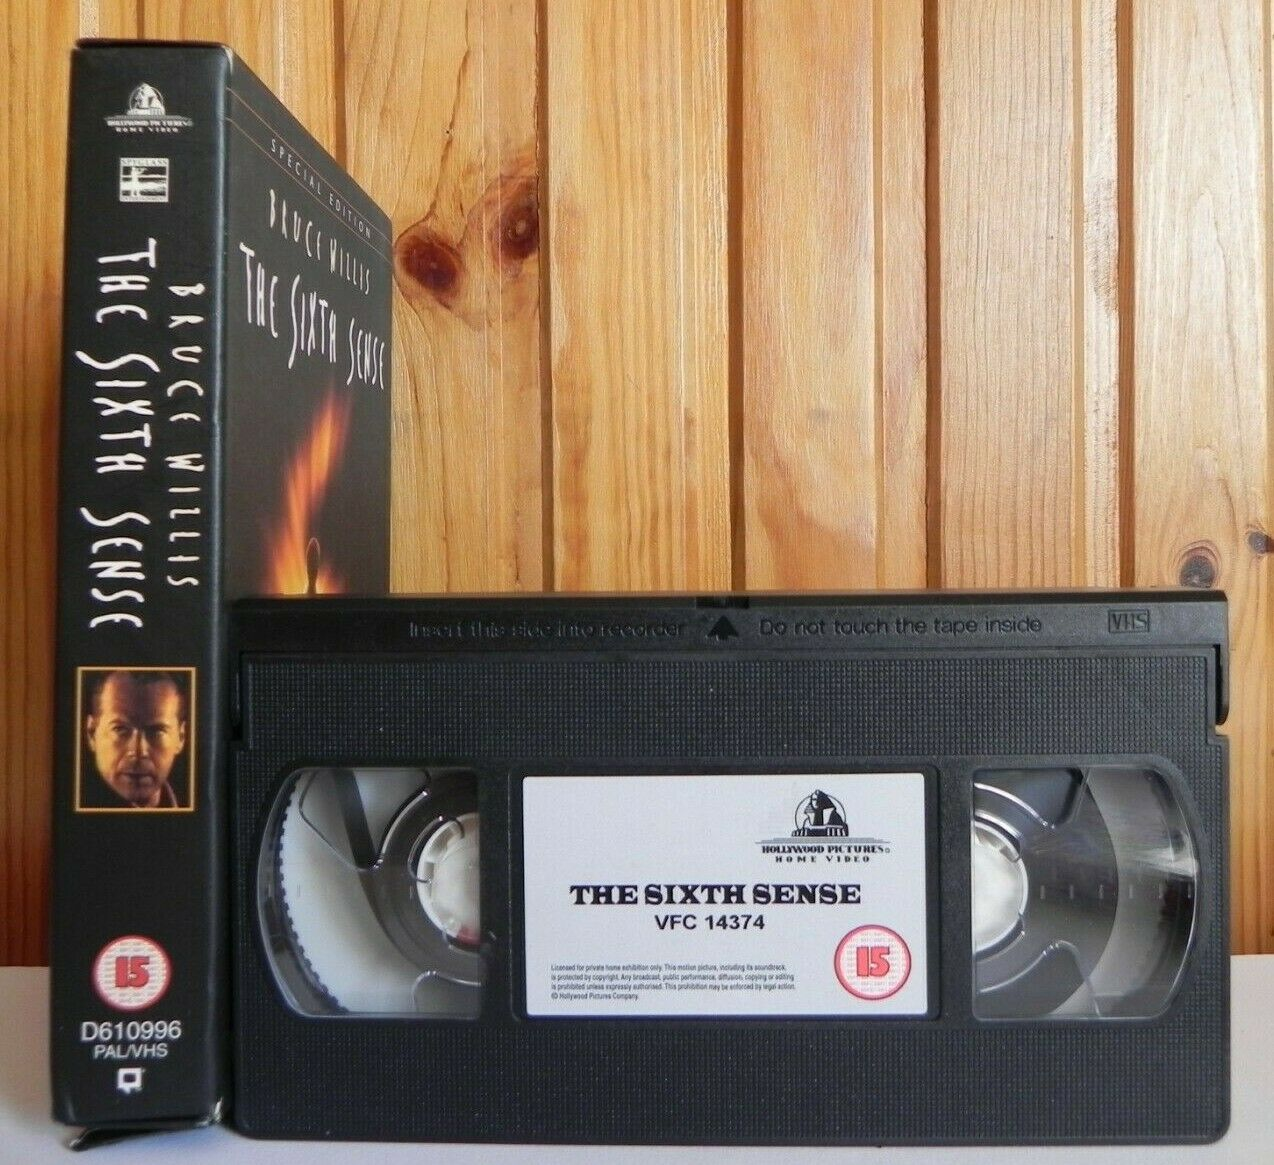 The Sixth Sense [Special Edition]: Mystery Thriller - Bruce Willis - Pal VHS